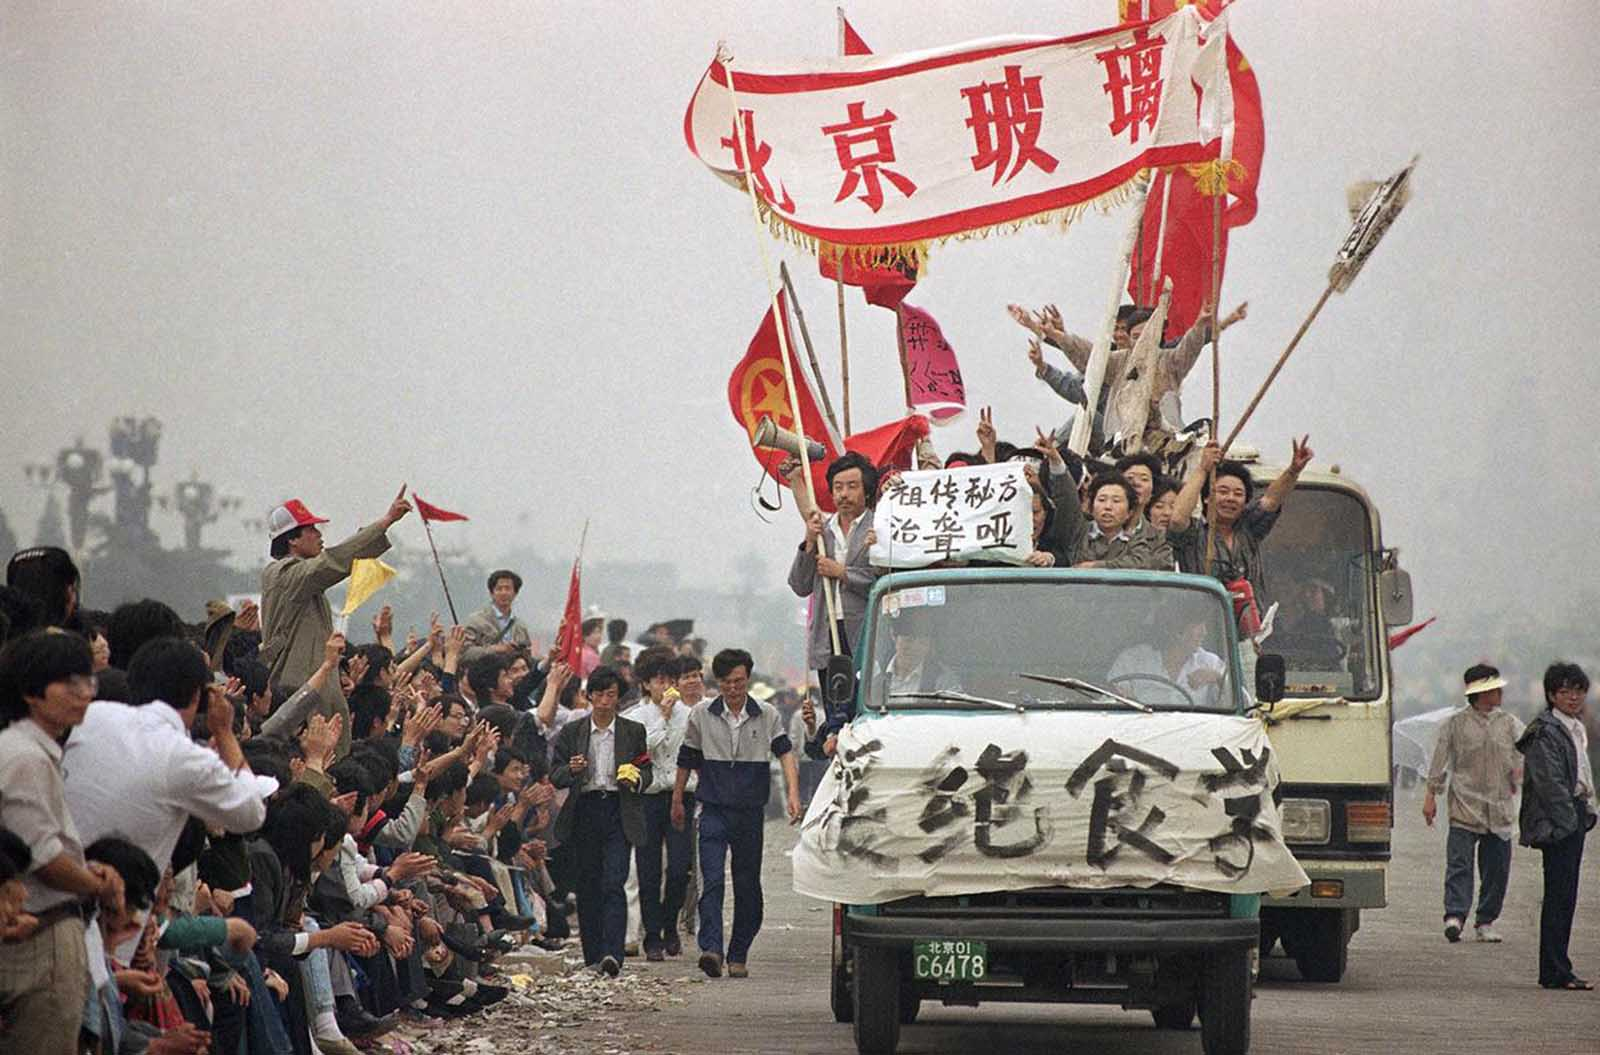 Enthusiastic demonstrators are cheered by bystanders as they arrive at Tiananmen Square to show support for the student hunger strike, on May 18, 1989.